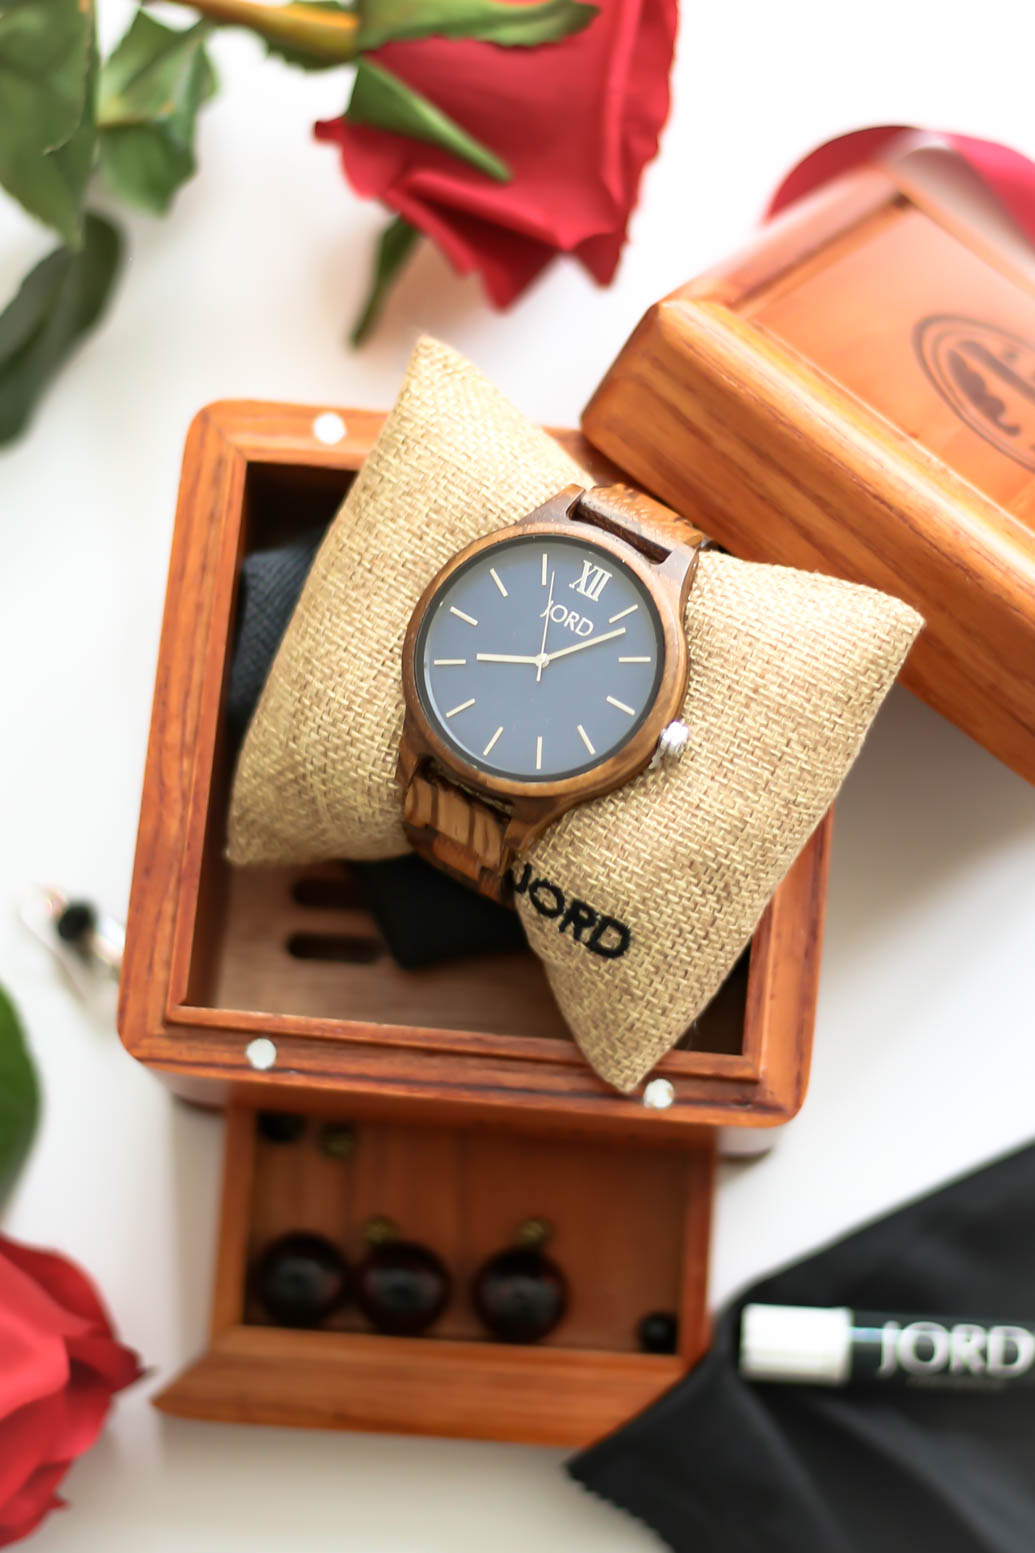 JORD Frankie Series Zebrawood & Navy Watch in wooden packaging.